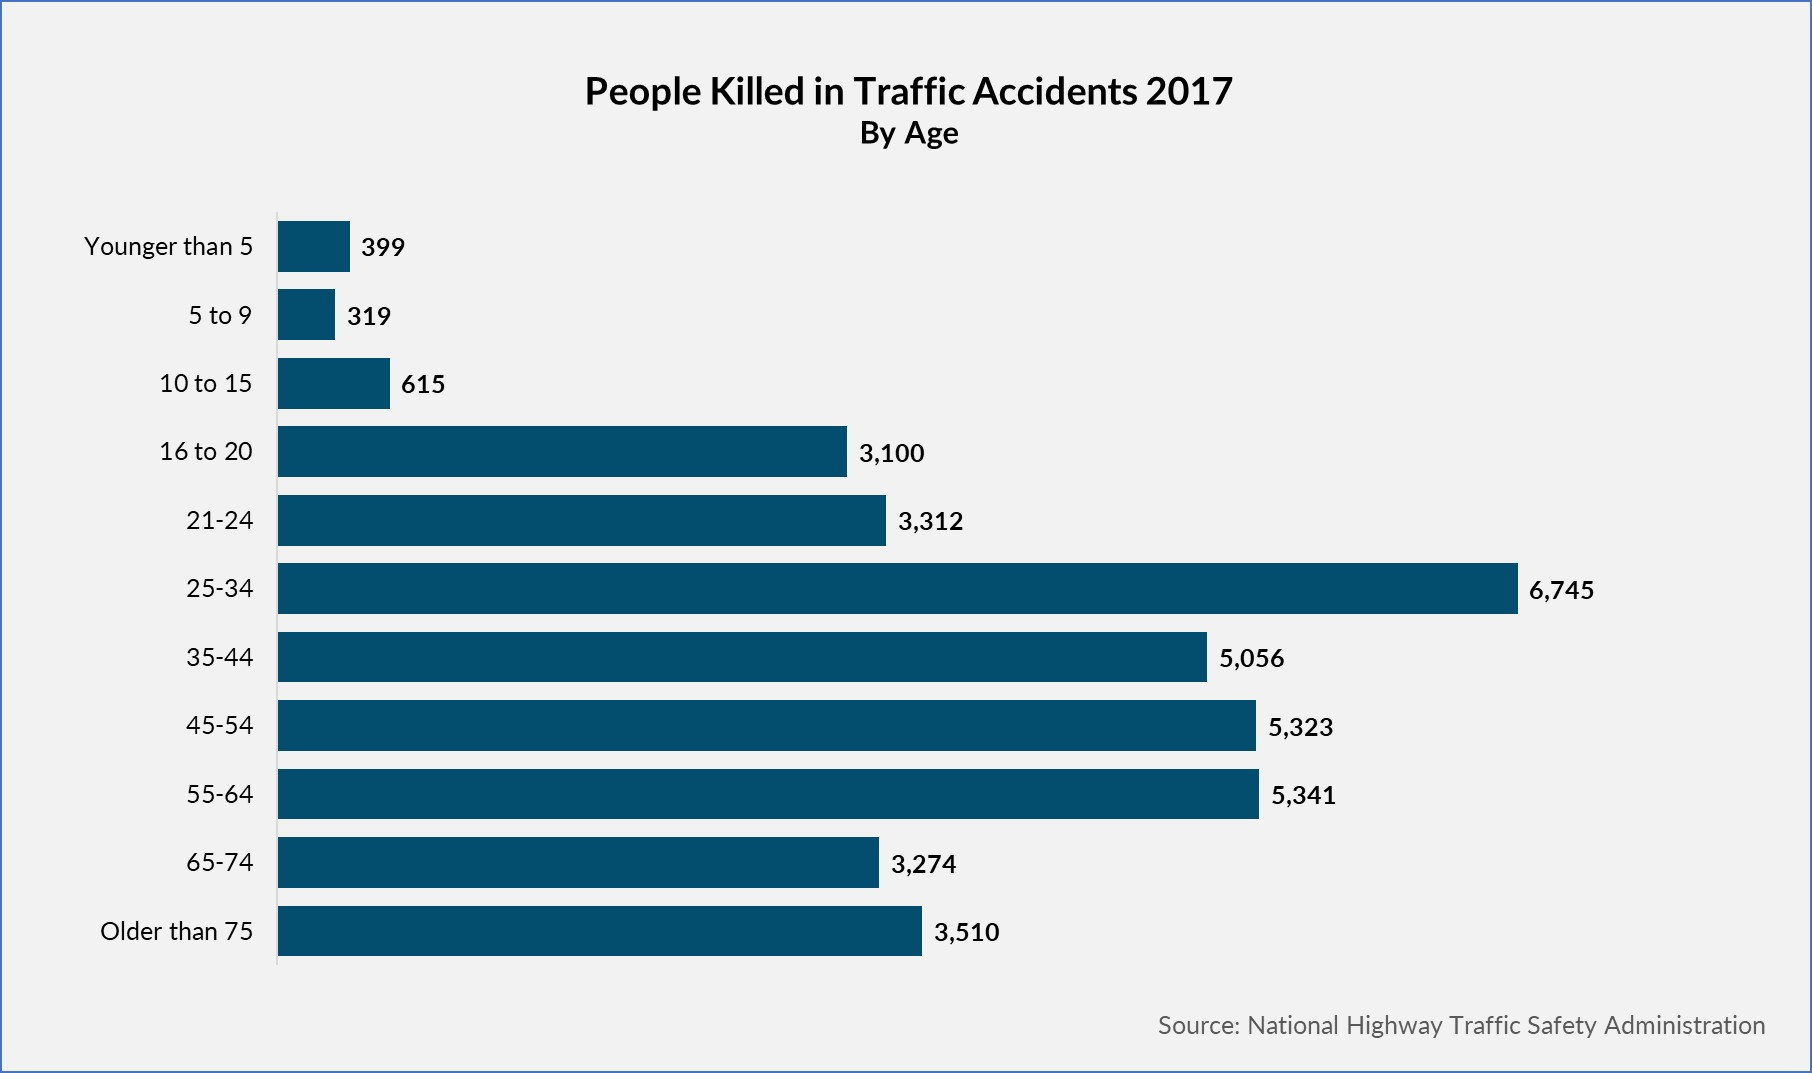 People killed in Car accidents by age group